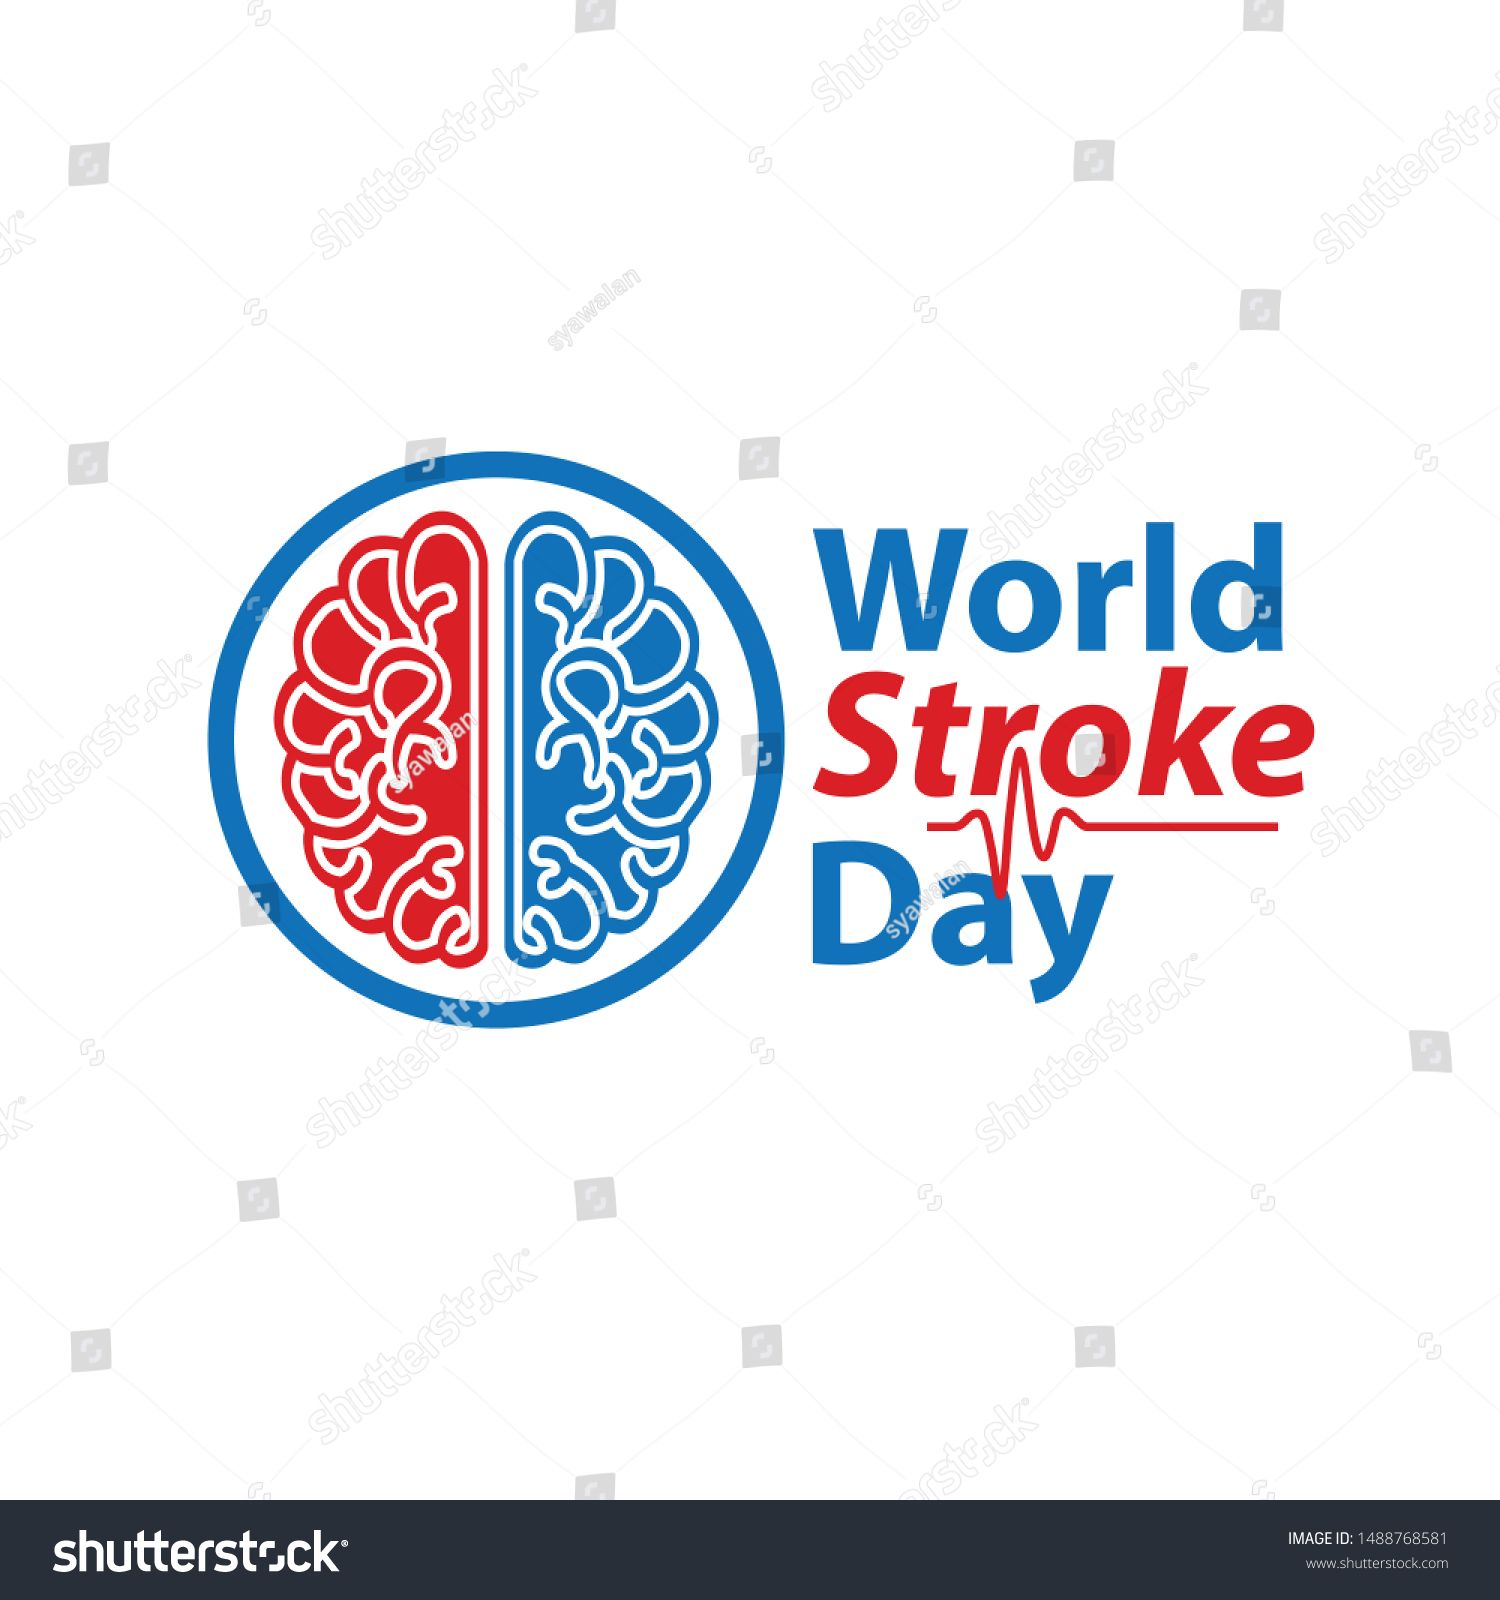 Vector Illustration Of World Stroke Day Health Care Campaign Ad Ad World Stroke Vector Illustration World Stroke Day Vector Illustration Health Care